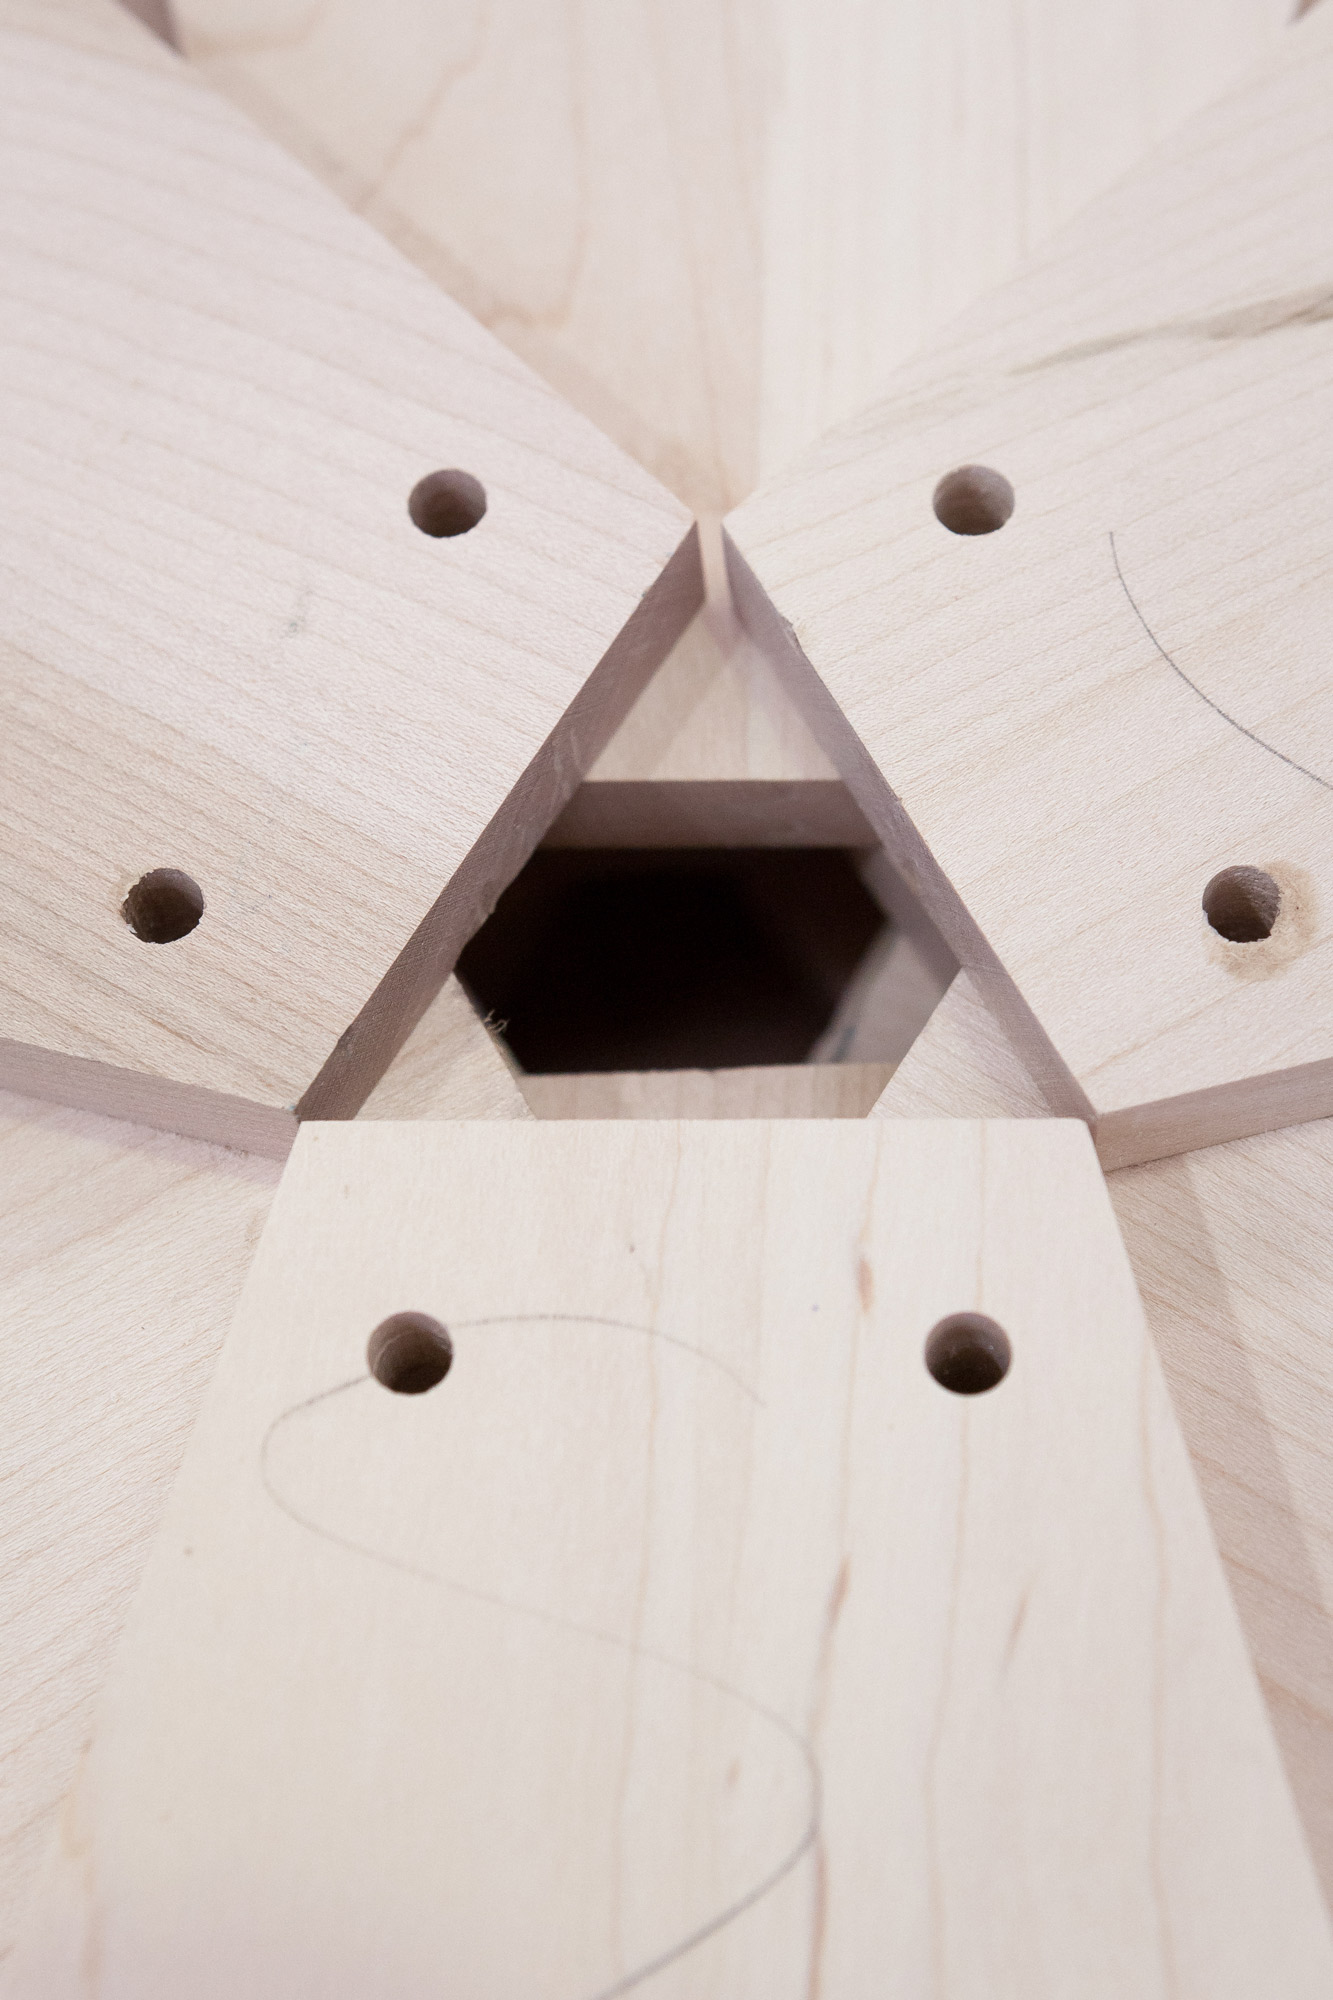 Detail of tulipwood wheel components for the pull out blinds of 'A Window to the Arzak Universe' © Uxío Da Vila